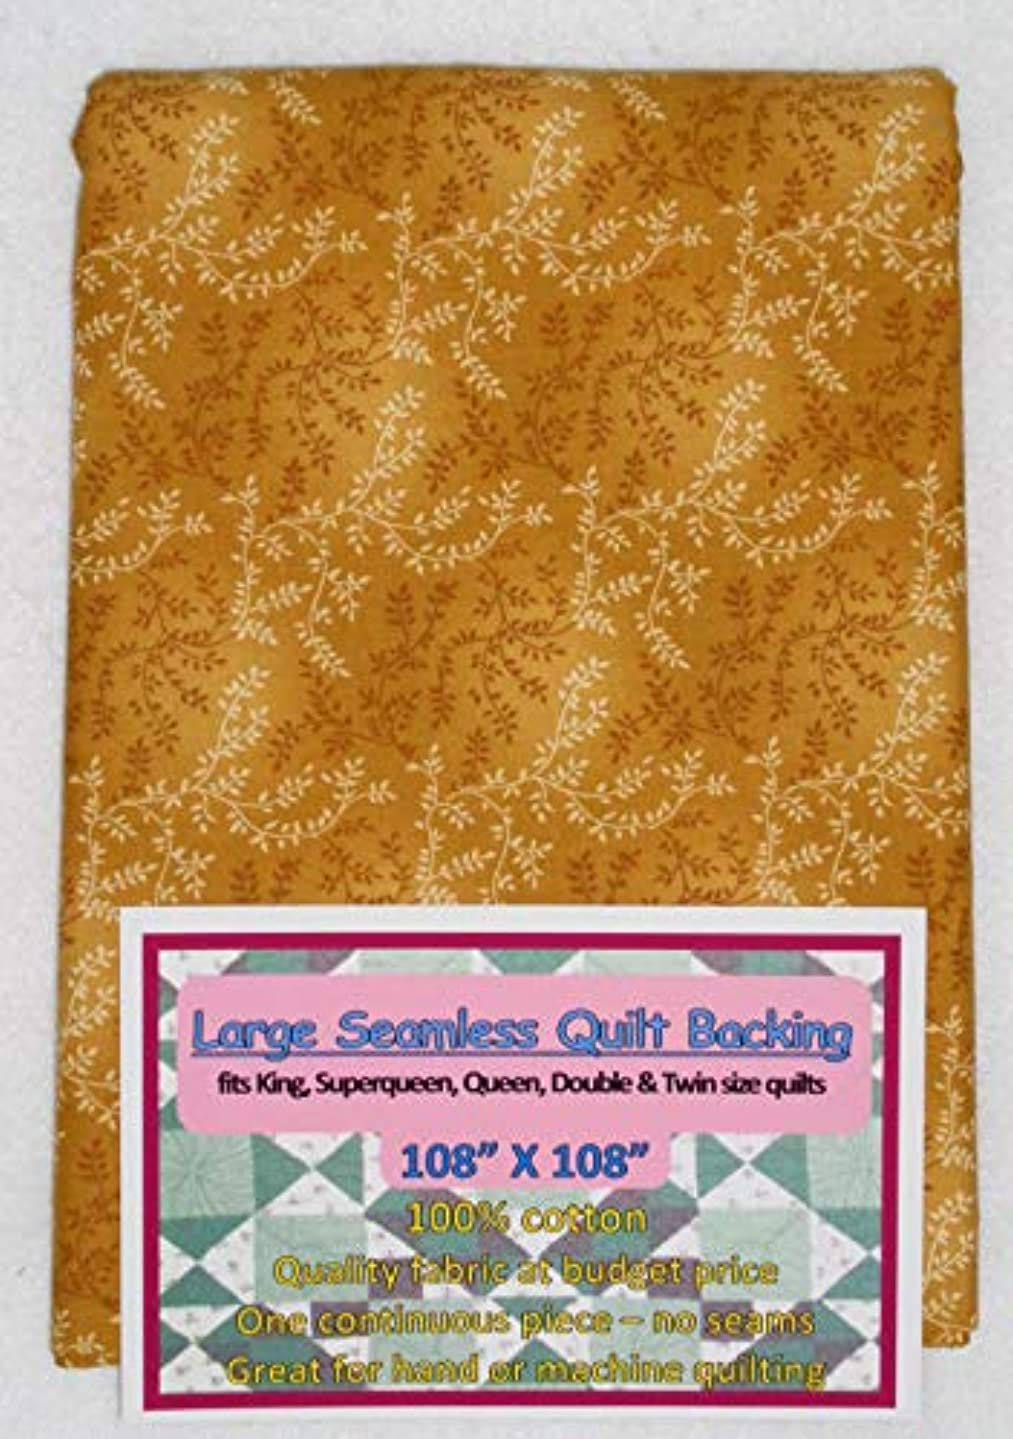 Quilt Backing, Large, Seamless, C47603-500, Gold